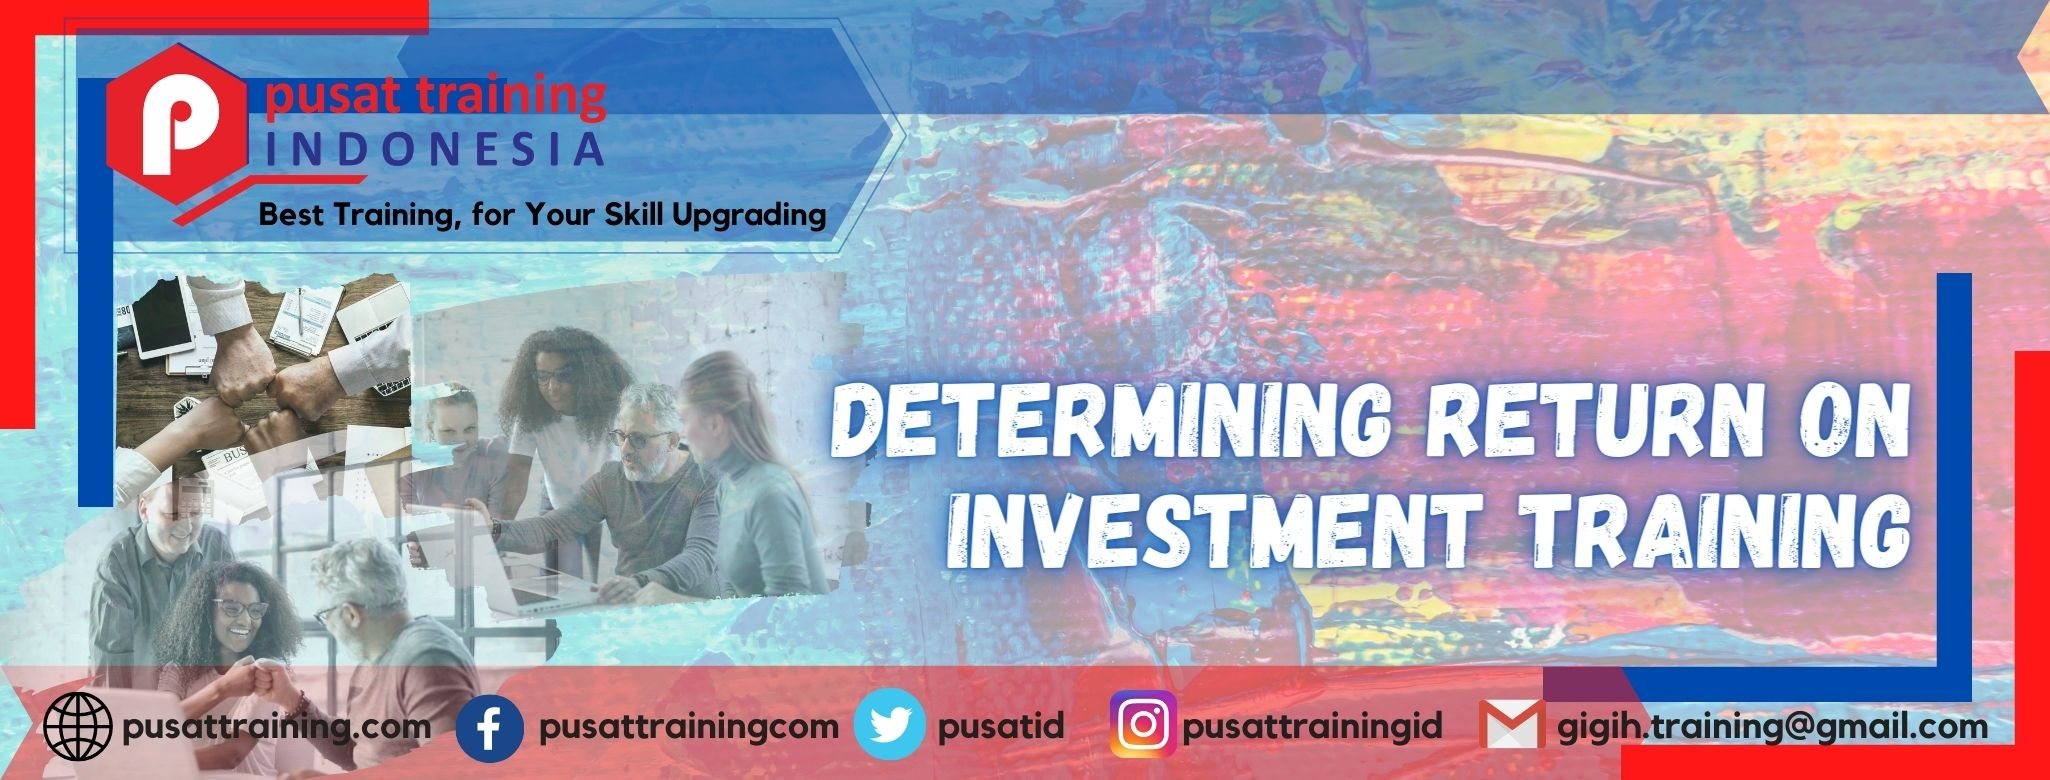 determining-return-on-investment-training